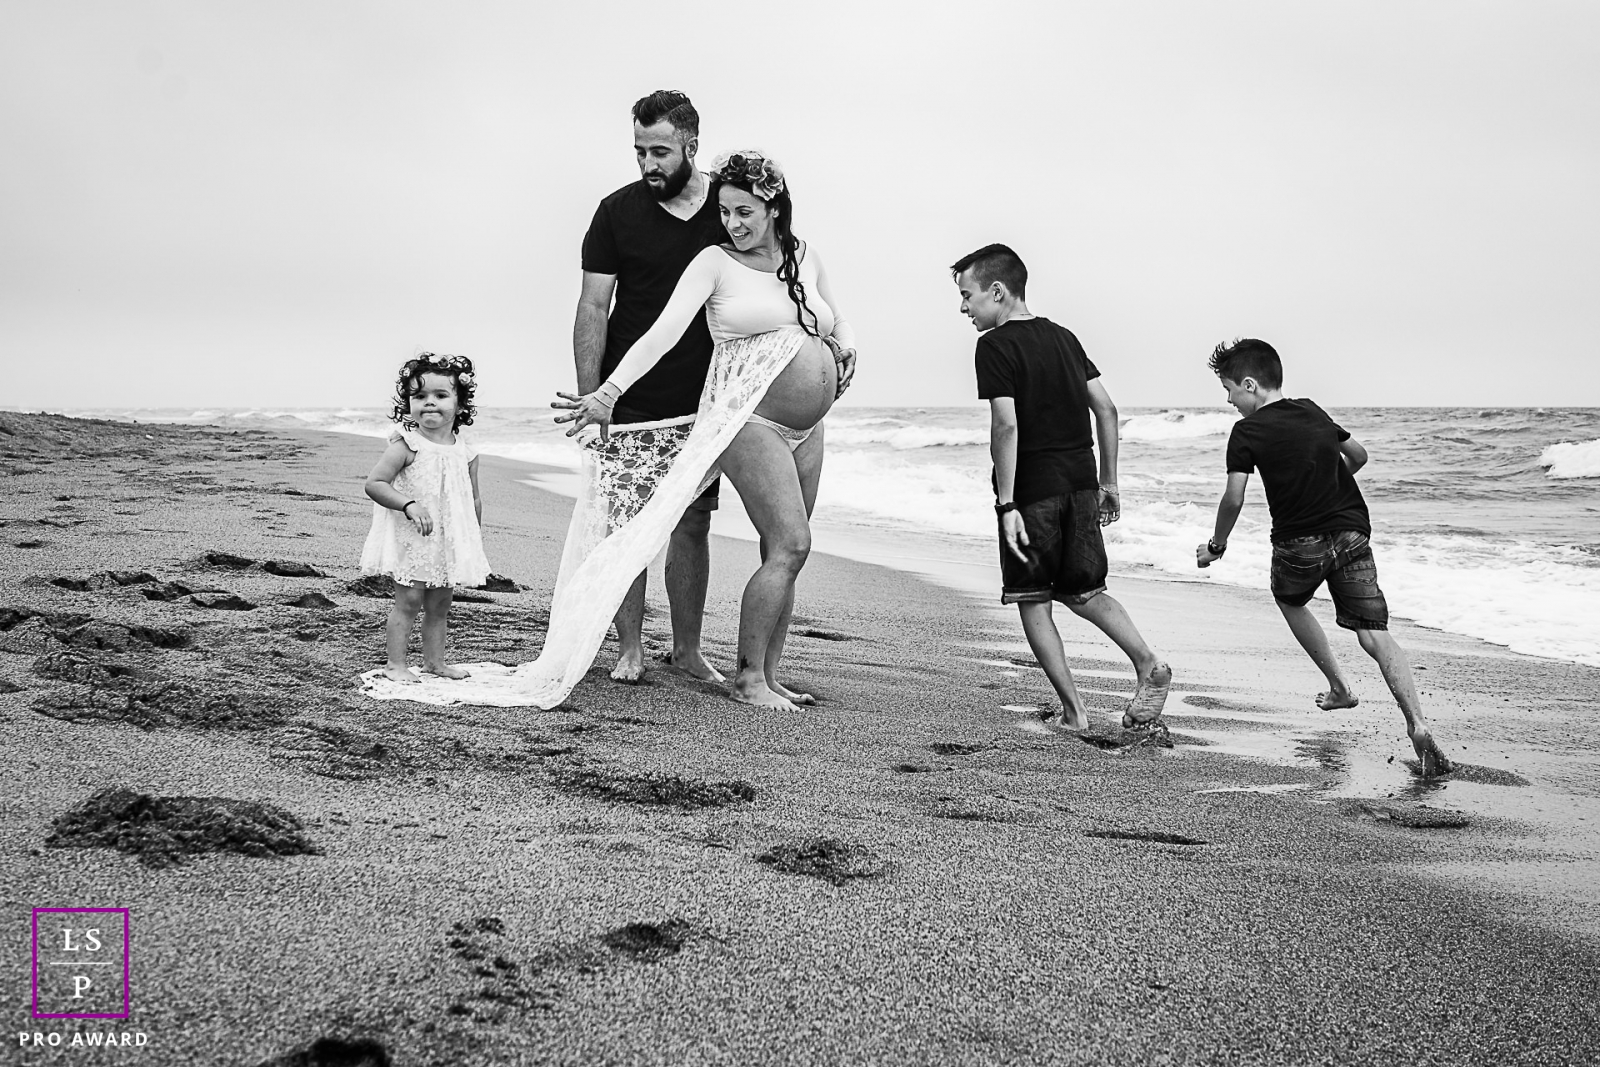 Perpignan Creative Lifestyle Family Portrait image taken while playing on the beach sand